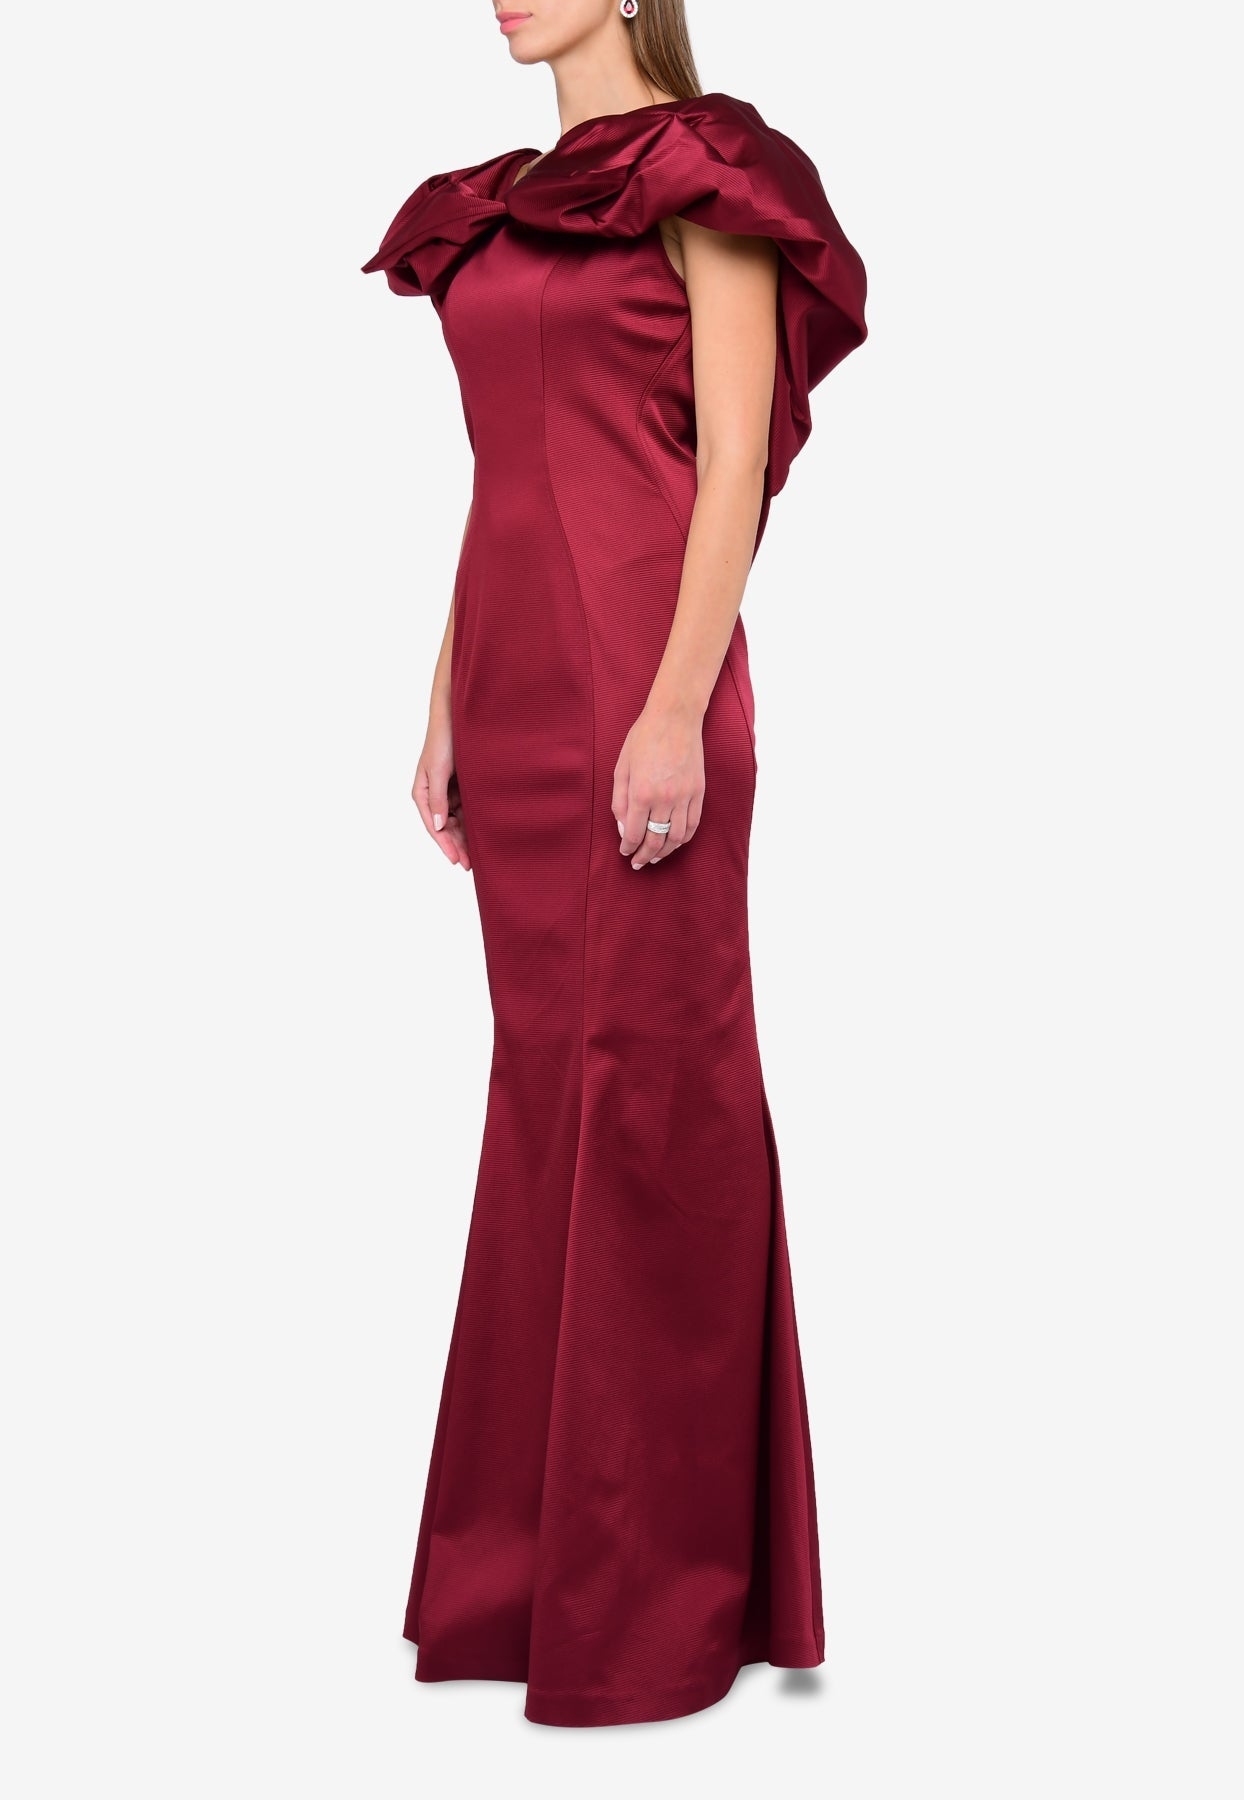 Zac Posen Textured Mermaid-cut Gown With Large Bow In Red